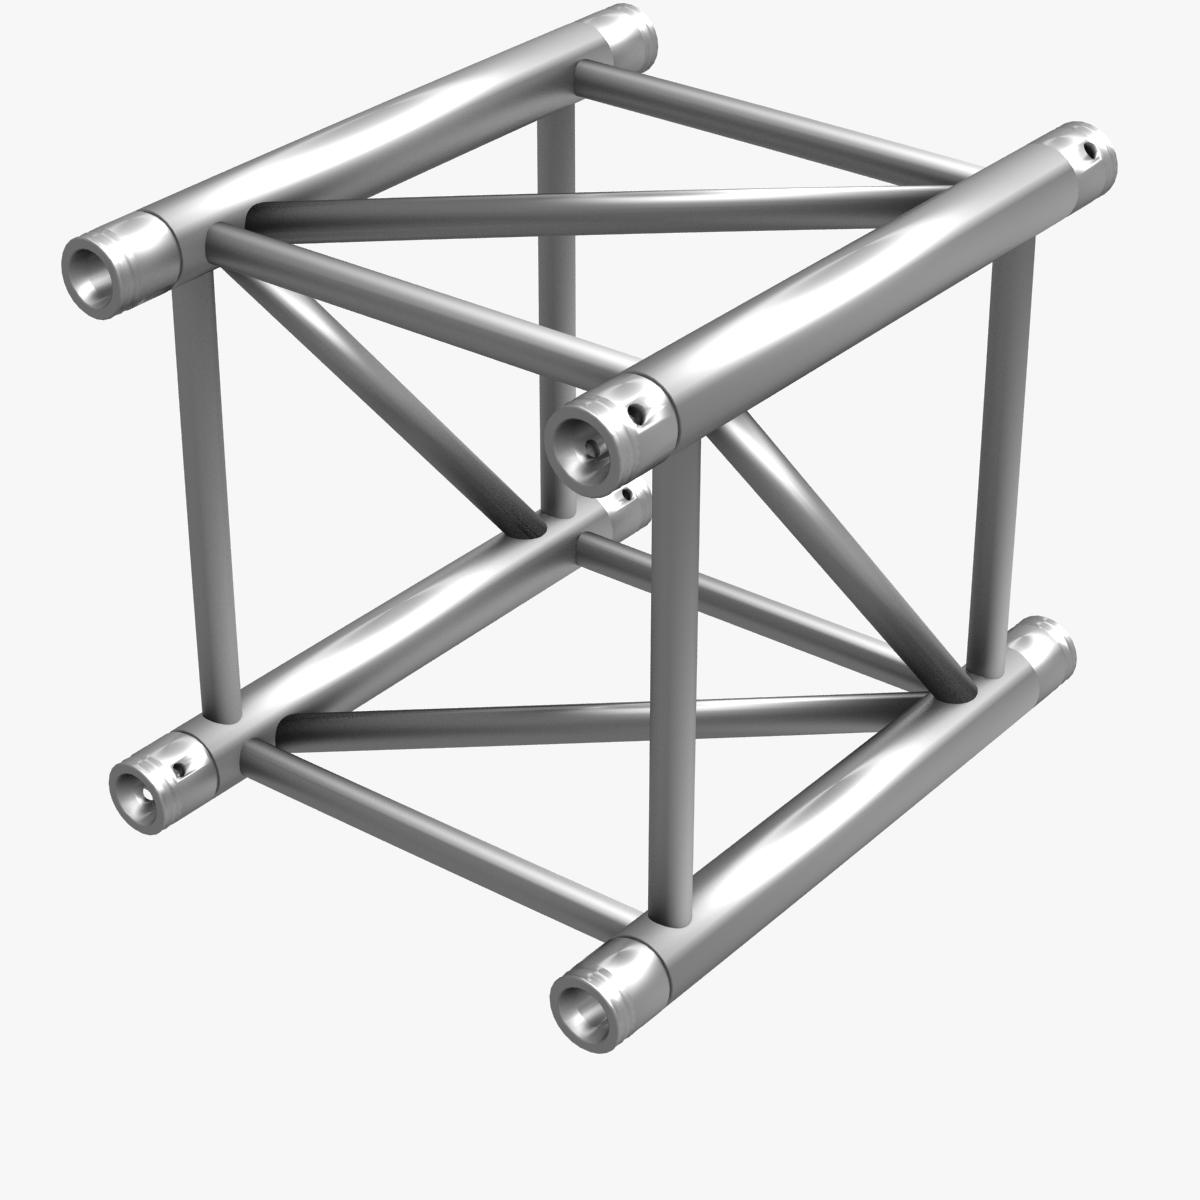 big square truss (collection 10 modular pieces) 3d model 3ds dxf fbx c4d dae  268541